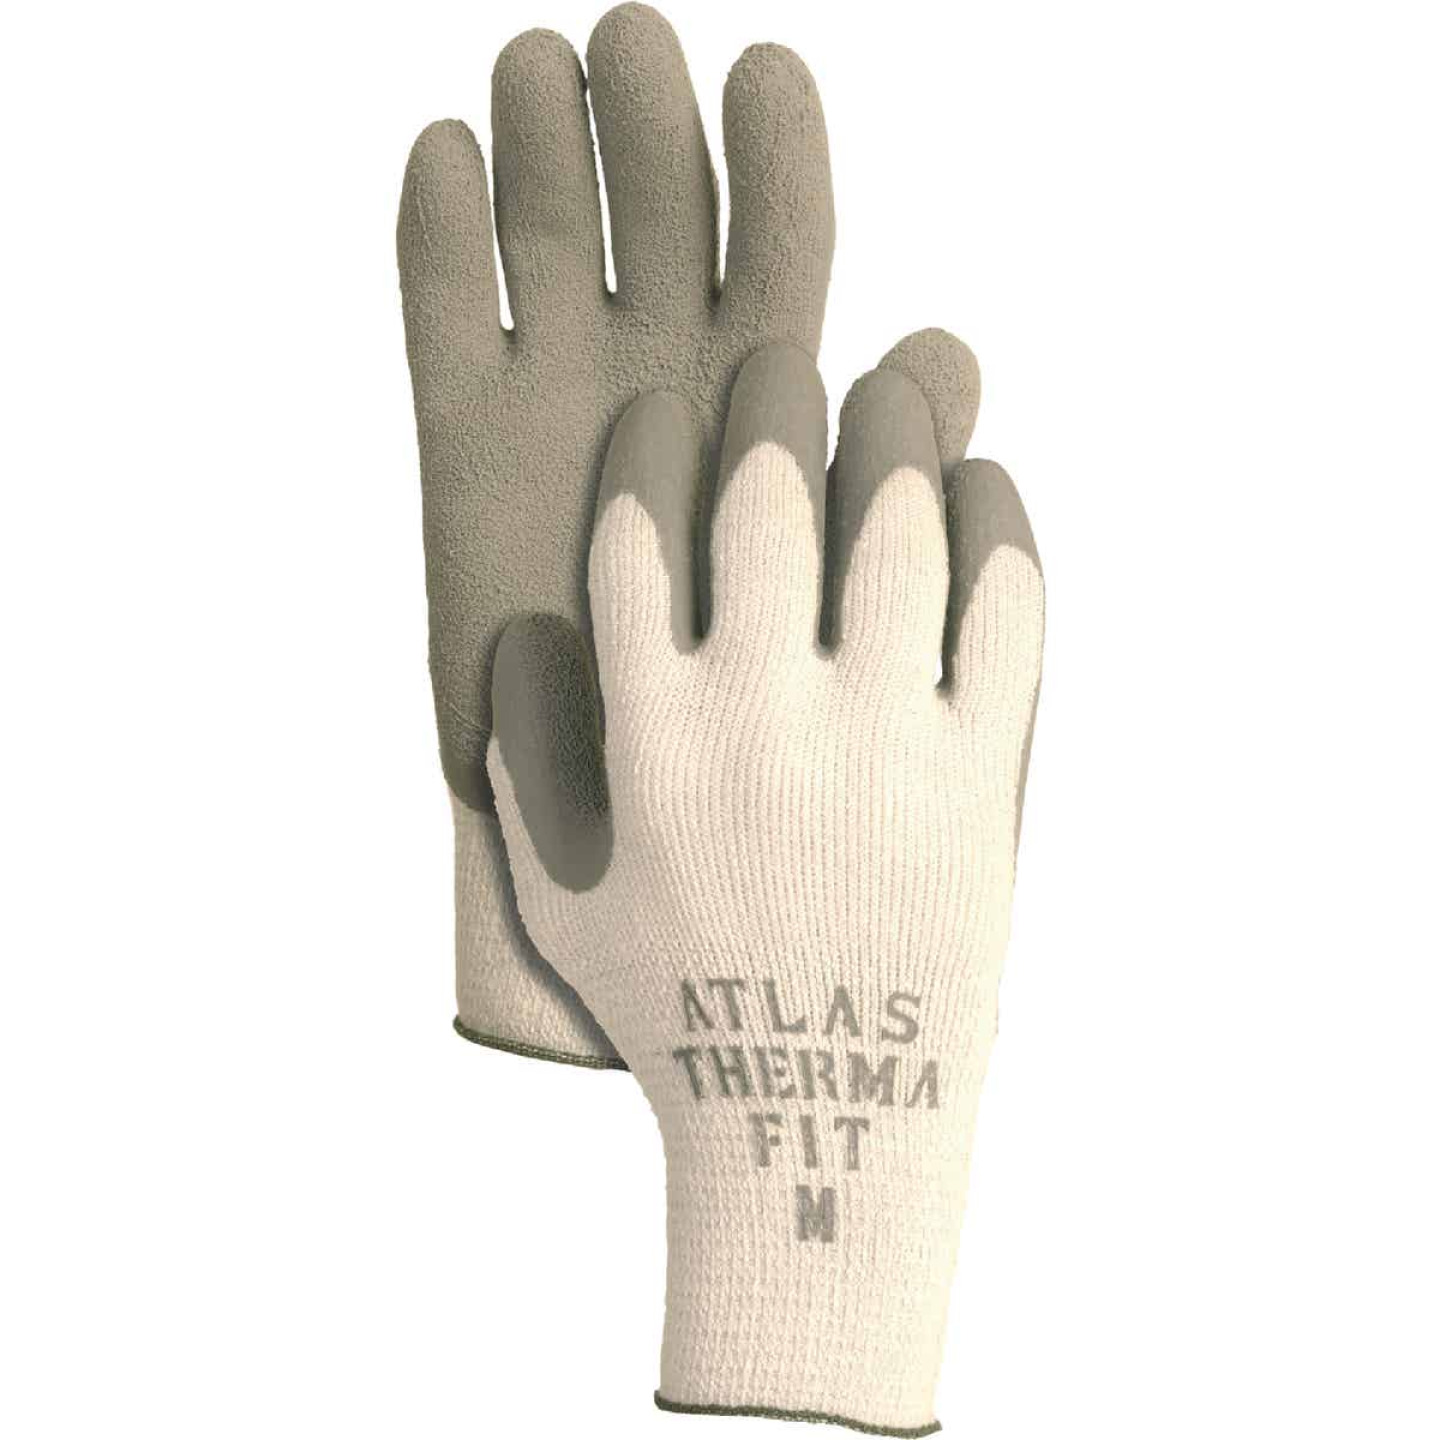 Atlas Therma-Fit Men's Medium Latex-Dipped Knit Winter Glove Image 1